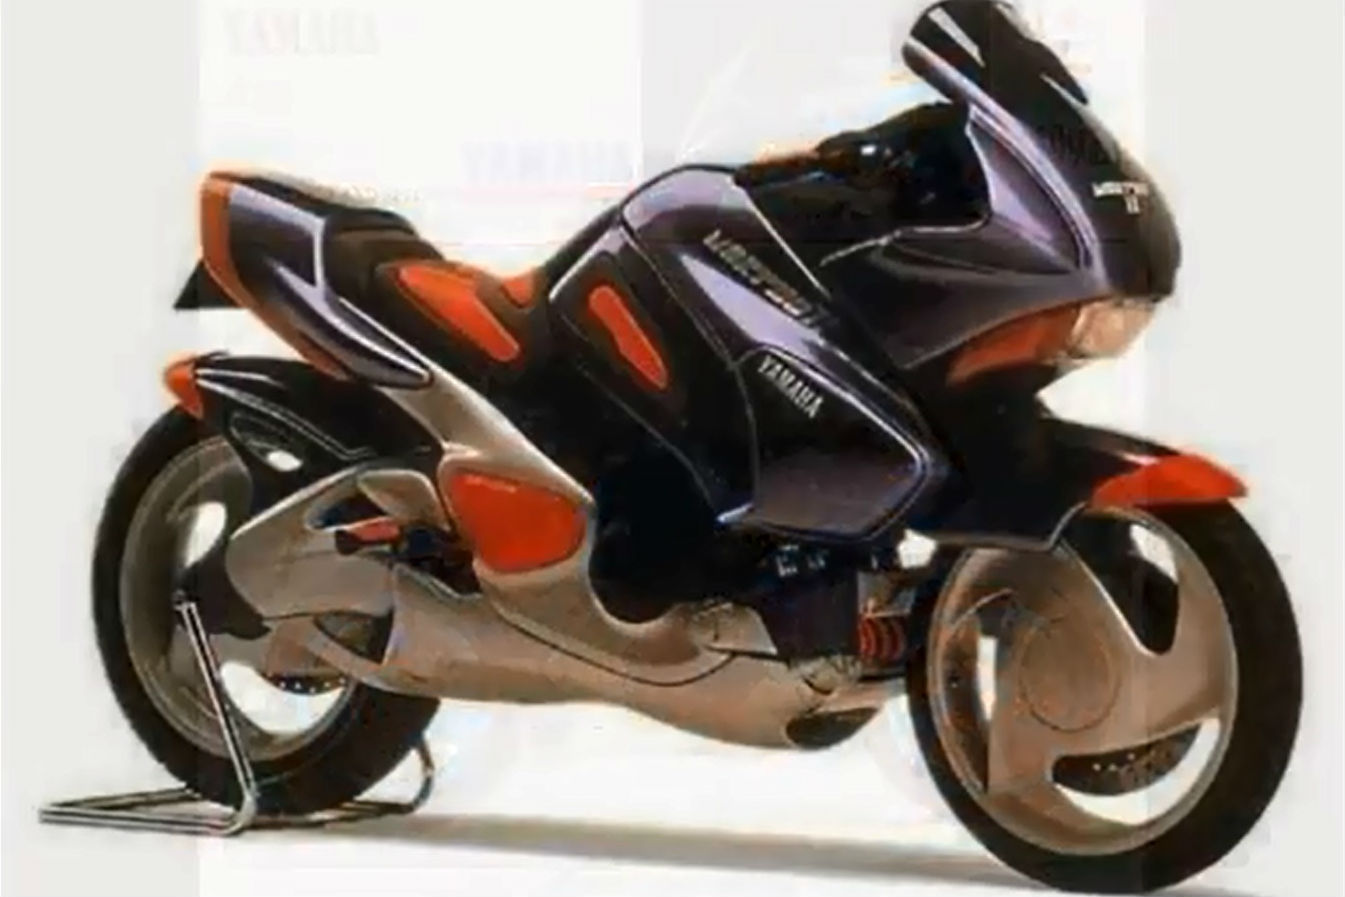 Top 10 Yamaha concepts that didn't make it